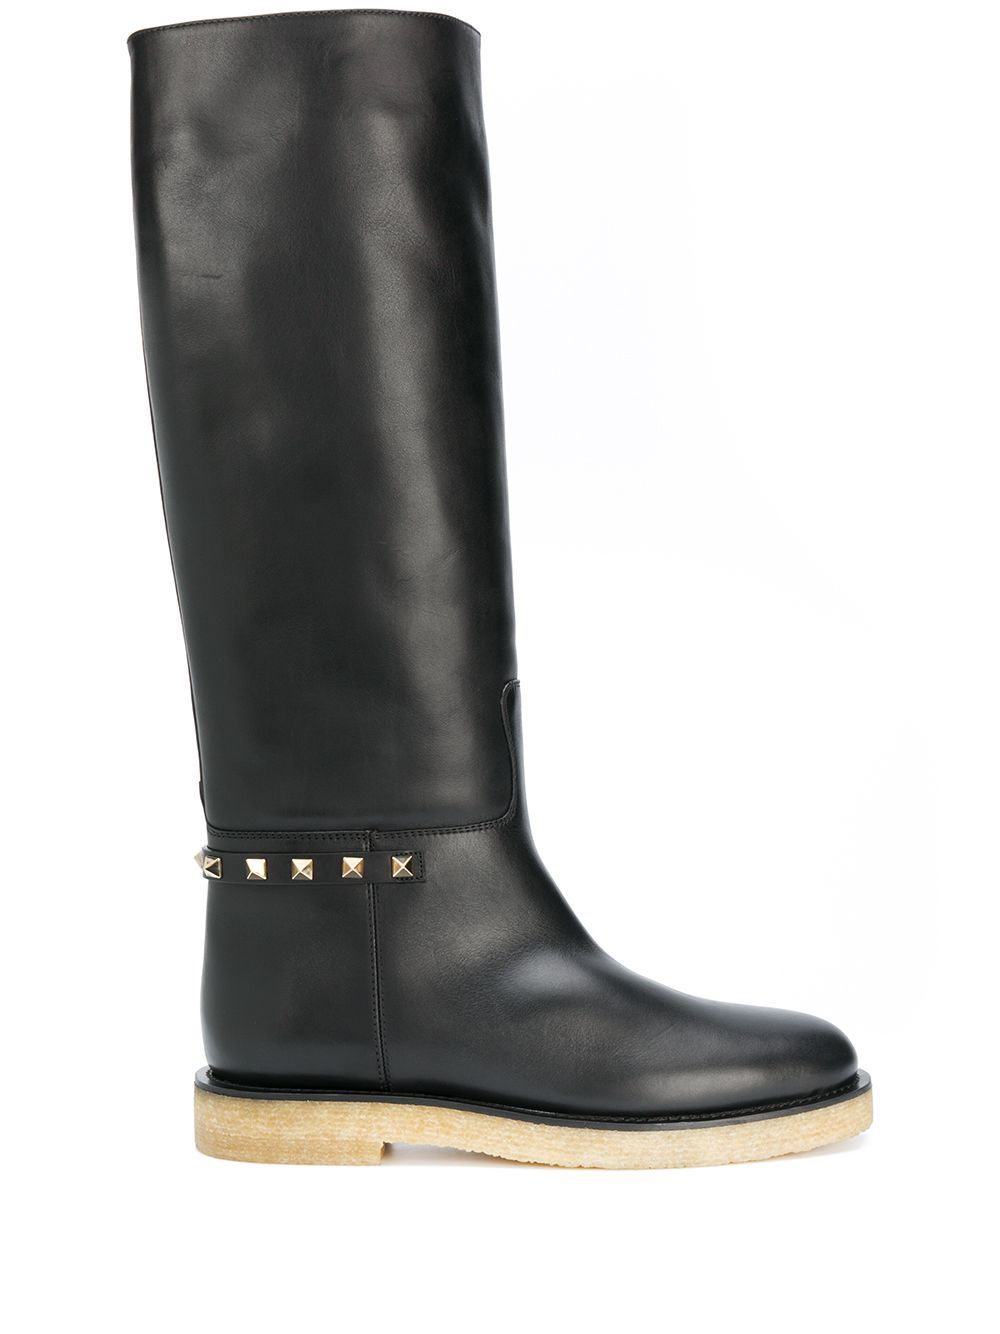 Valentino VALENTINO GARAVANI WOMEN'S BLACK LEATHER BOOTS